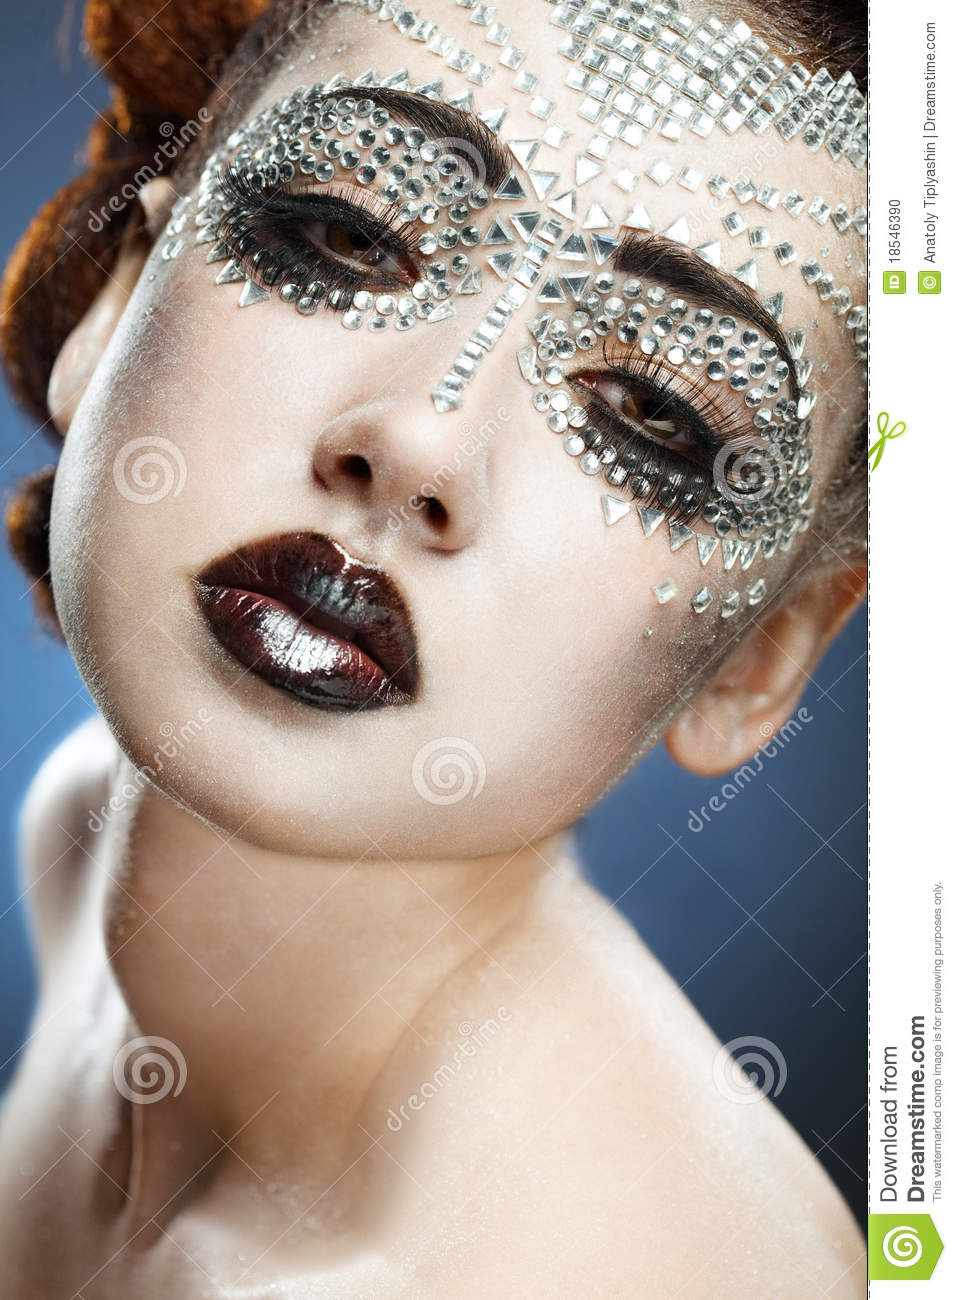 Beauty Woman Makeup With Crystals On Face Stock Photo